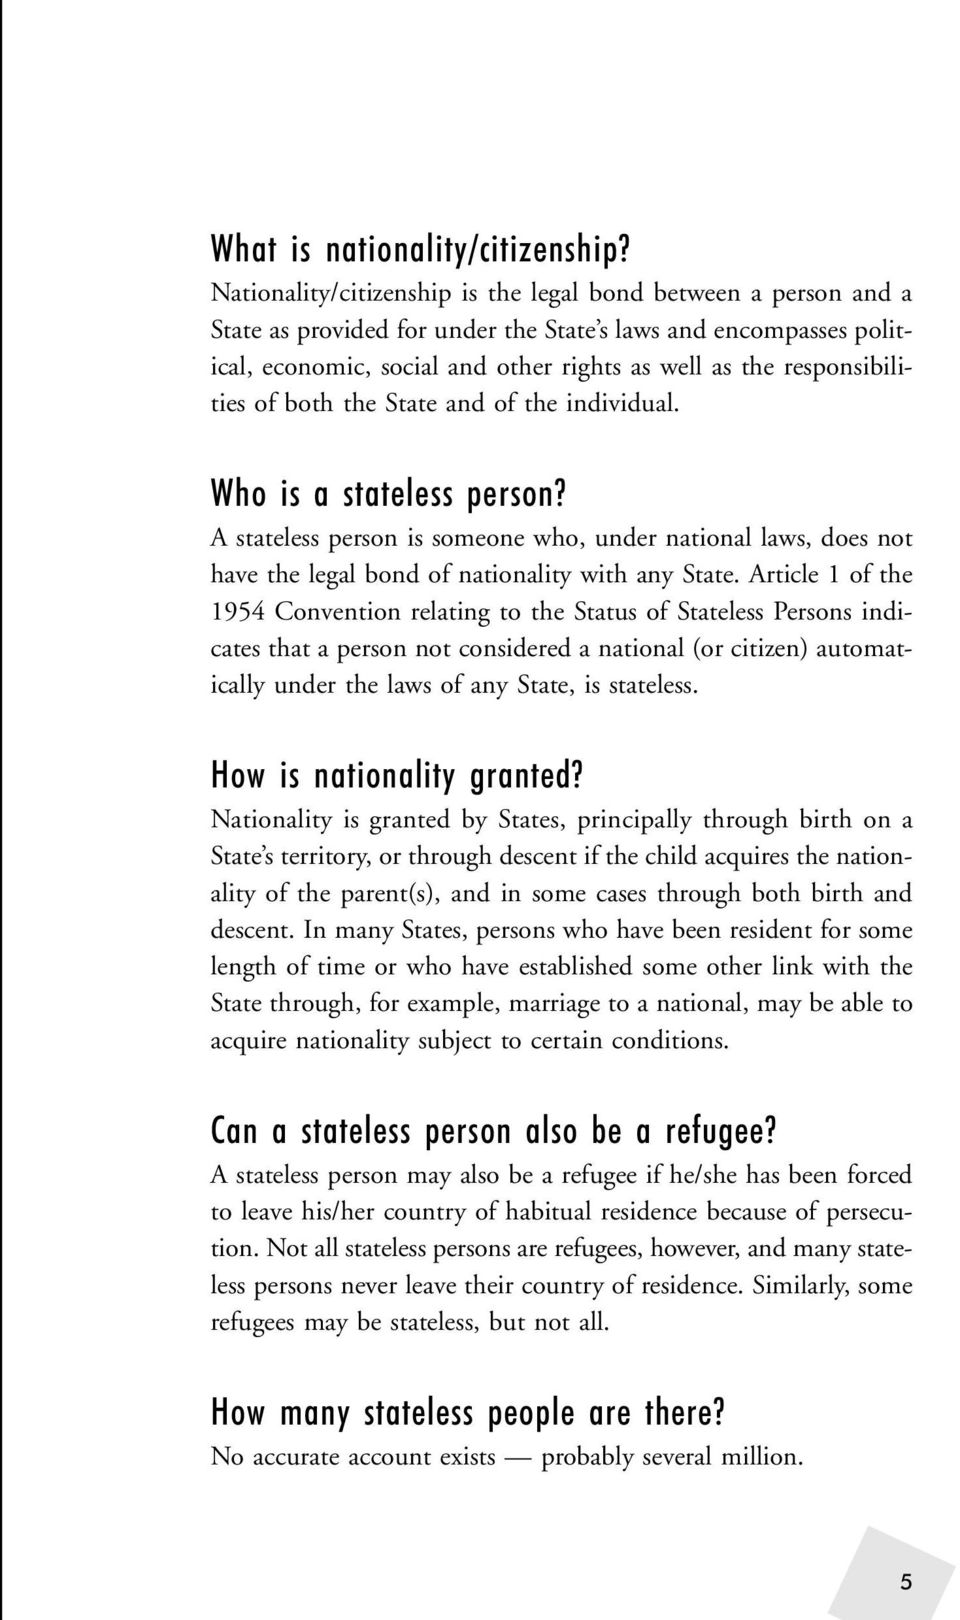 responsibilities of both the State and of the individual. Who is a stateless person? A stateless person is someone who, under national laws, does not have the legal bond of nationality with any State.